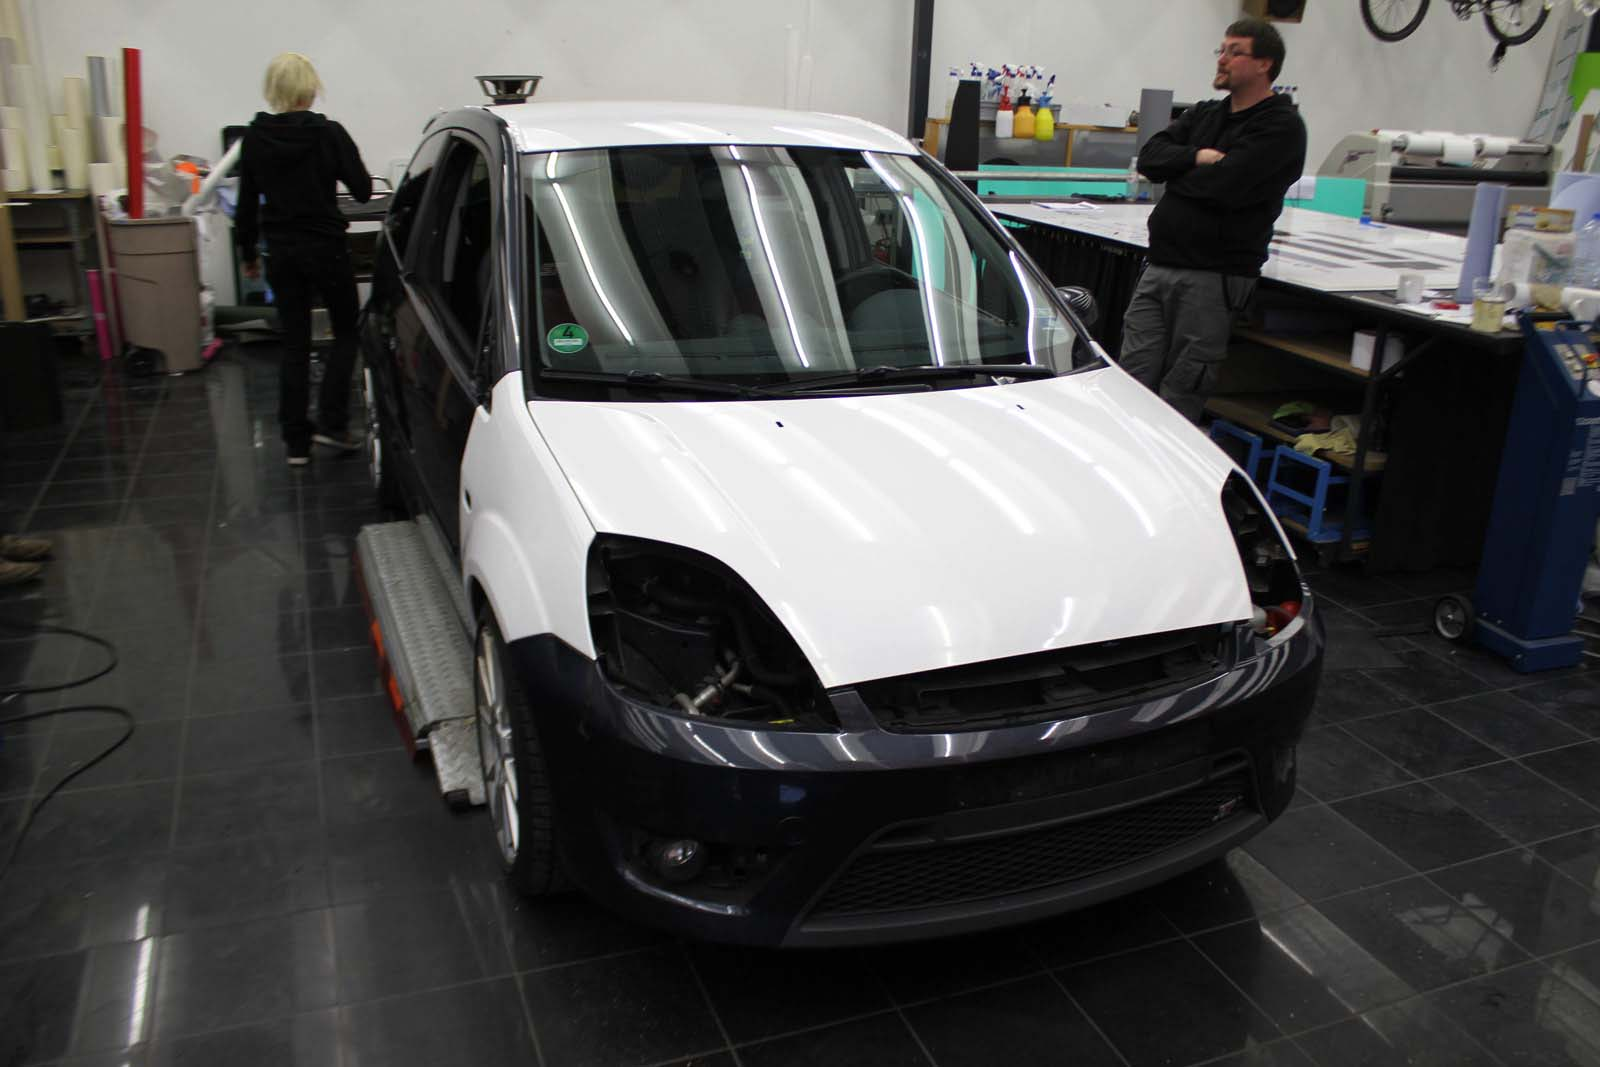 FORD_FIESTA_WRAPPING_WEISS_GLANZ_MIT_RACING_DESIGN_SCHWARZ_MATT_05